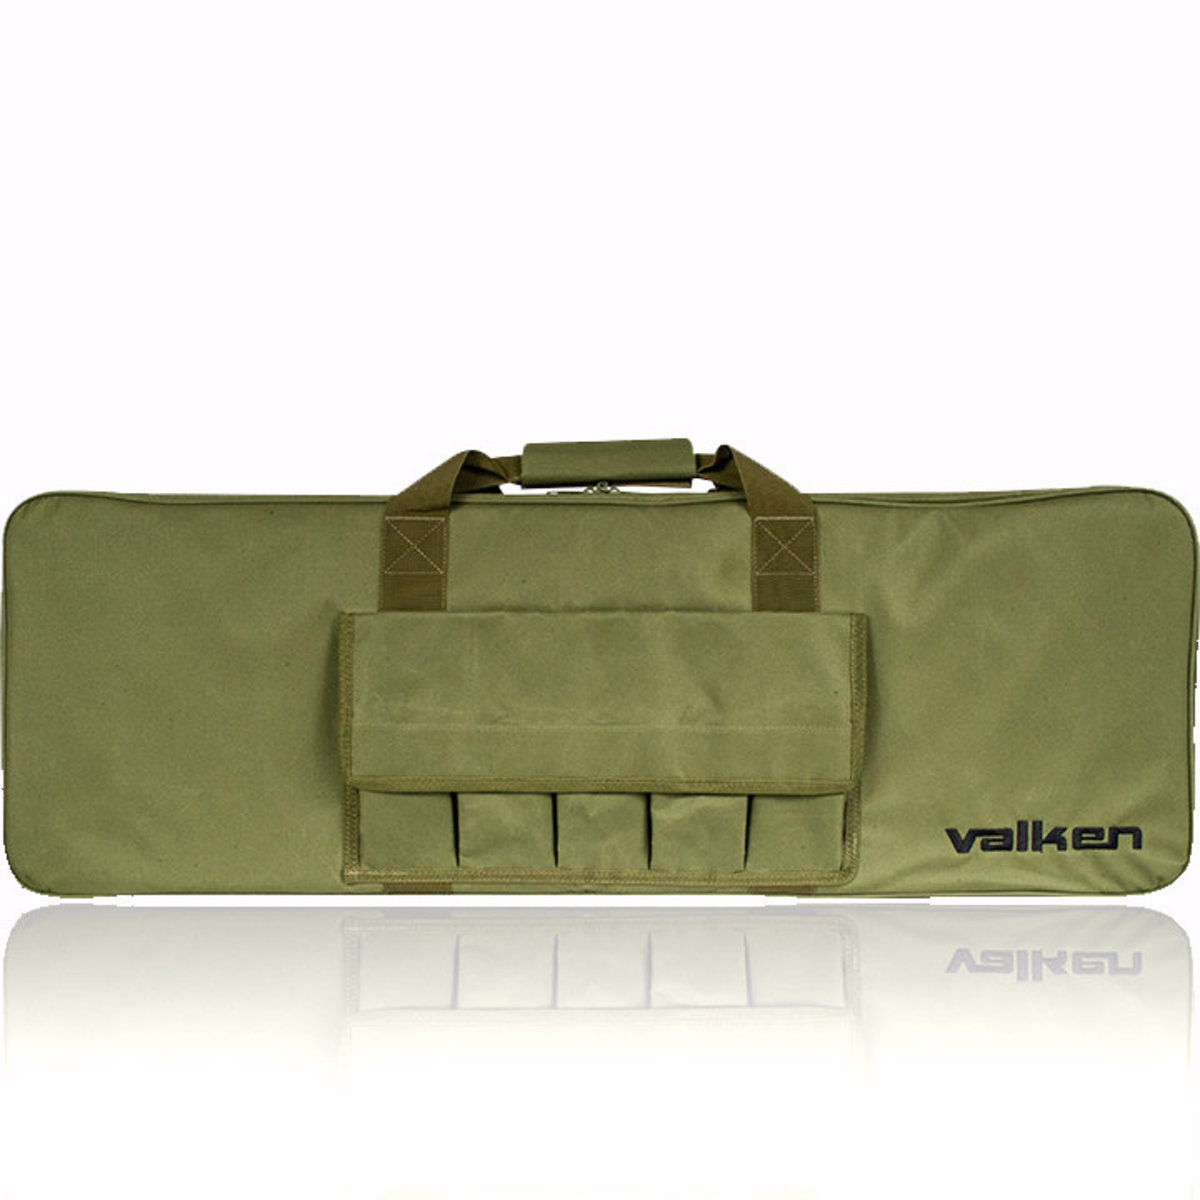 "View larger image of Valken 42"" Single Rifle Gun Bag - Olive"